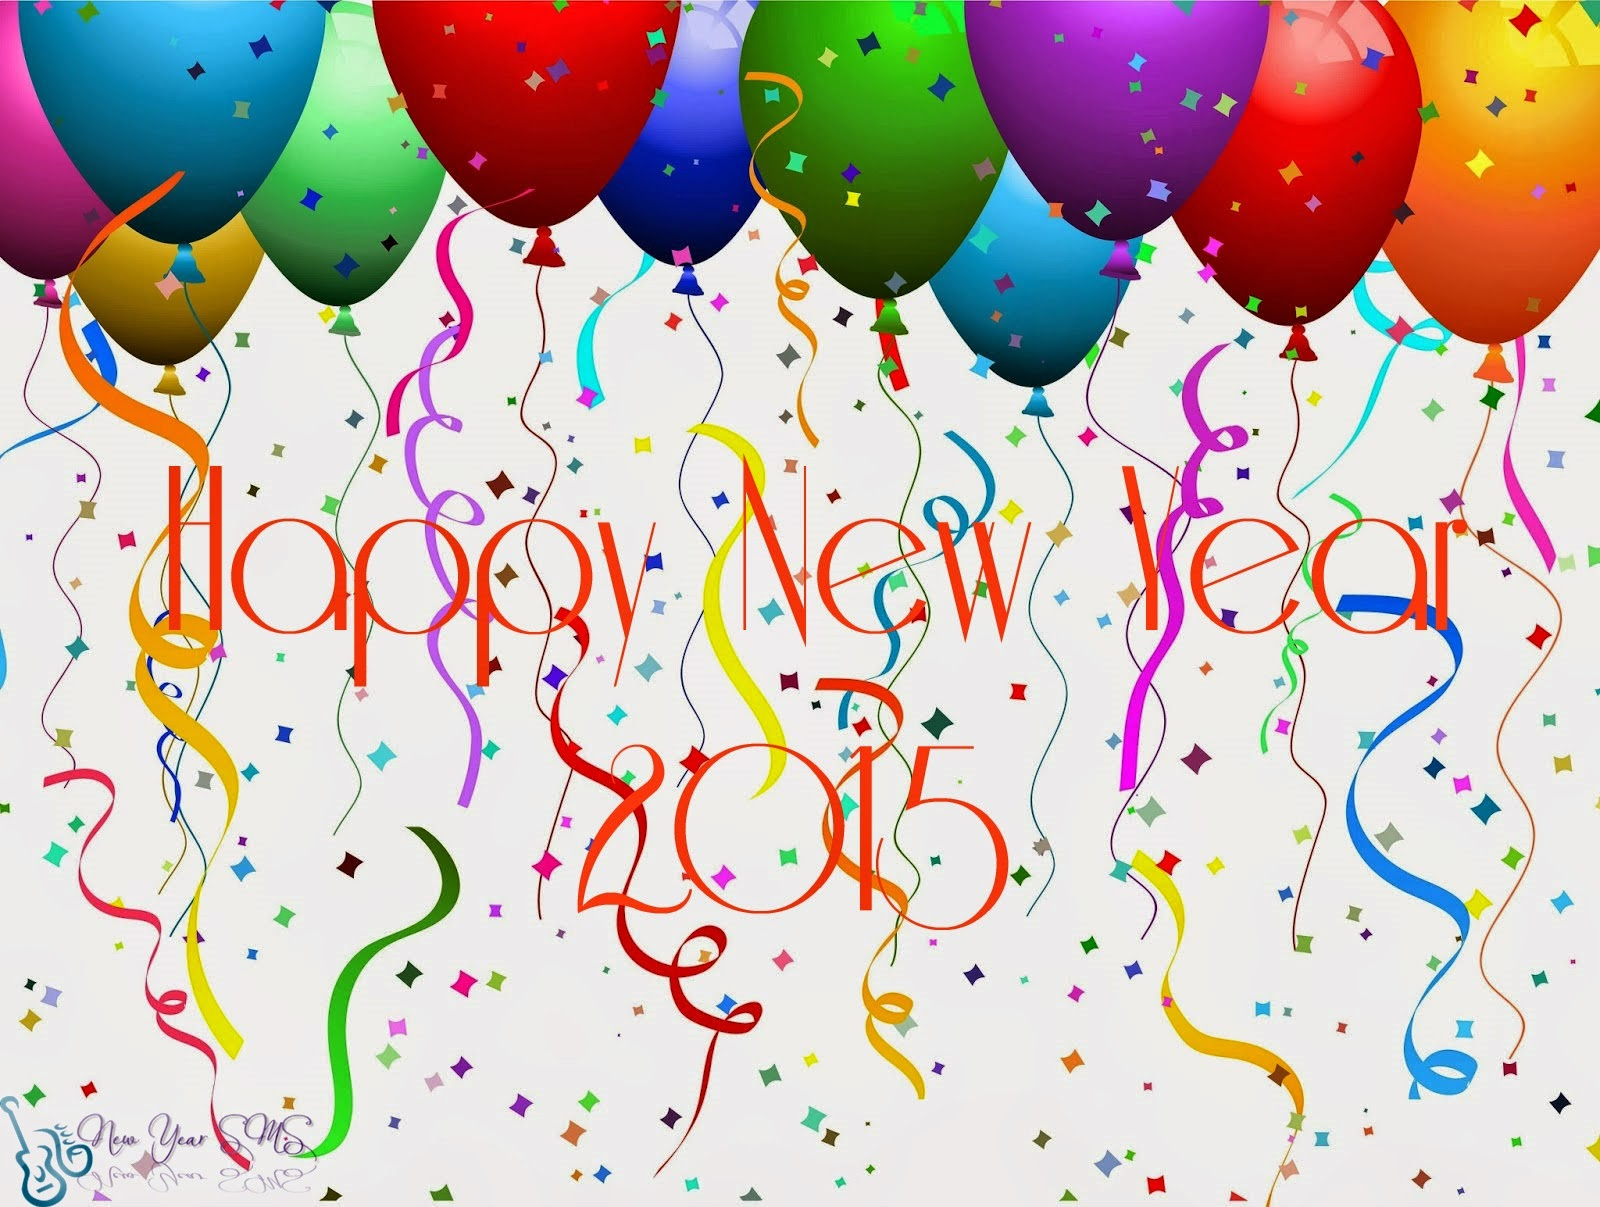 File Name : happy+new+year+2015+wallpapers.jpg Resolution : 1600x1600 ...